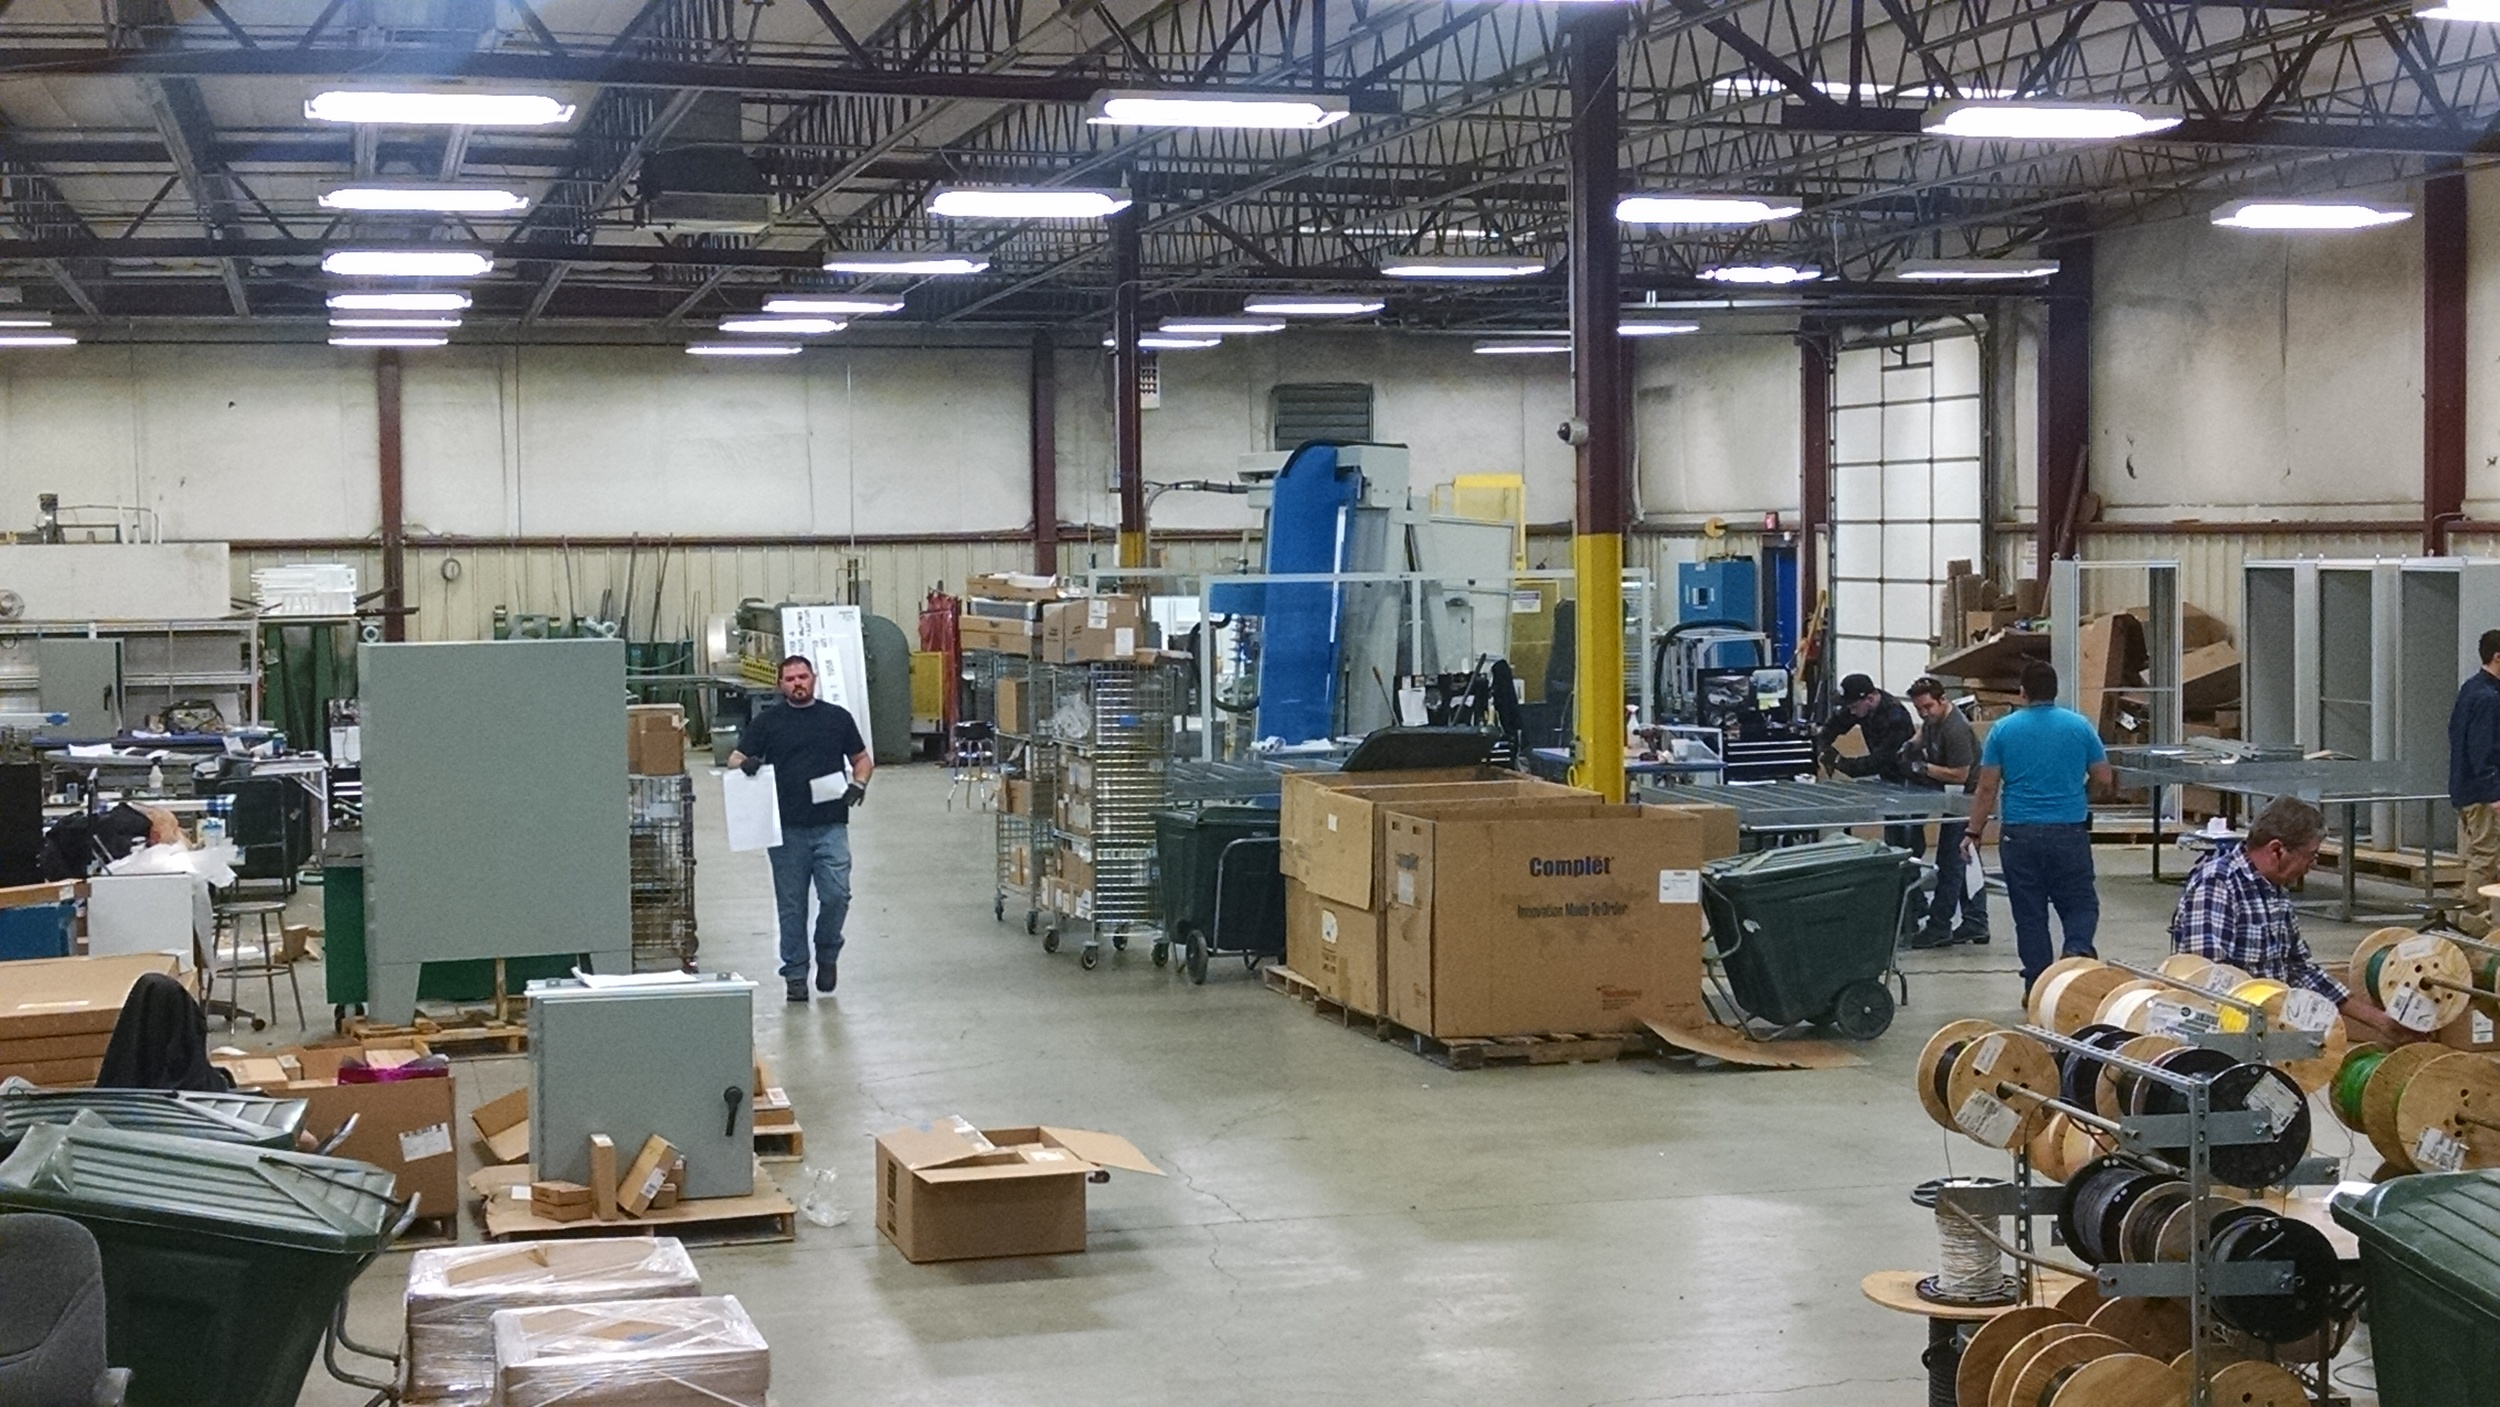 We're not using half of the shop for storage these days as we were when I started. It's all production space now.